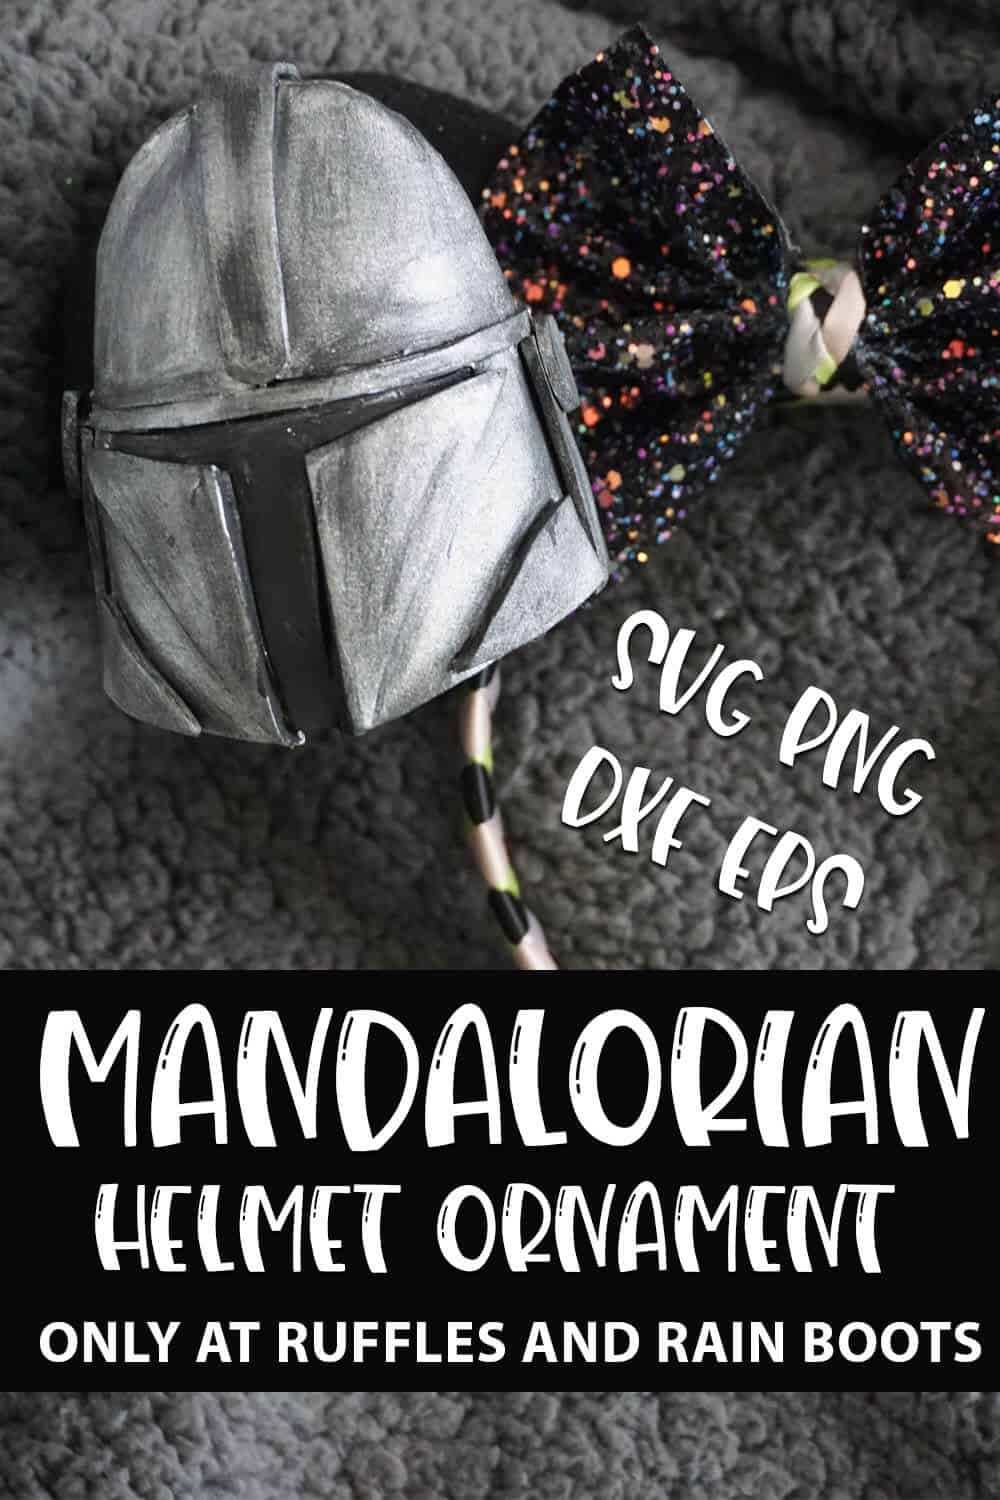 Mandalorian Helmet Ornament Pattern cut file set for cricut or silhouette with text which reads mandalorian helmet ornament svg png dxf eps